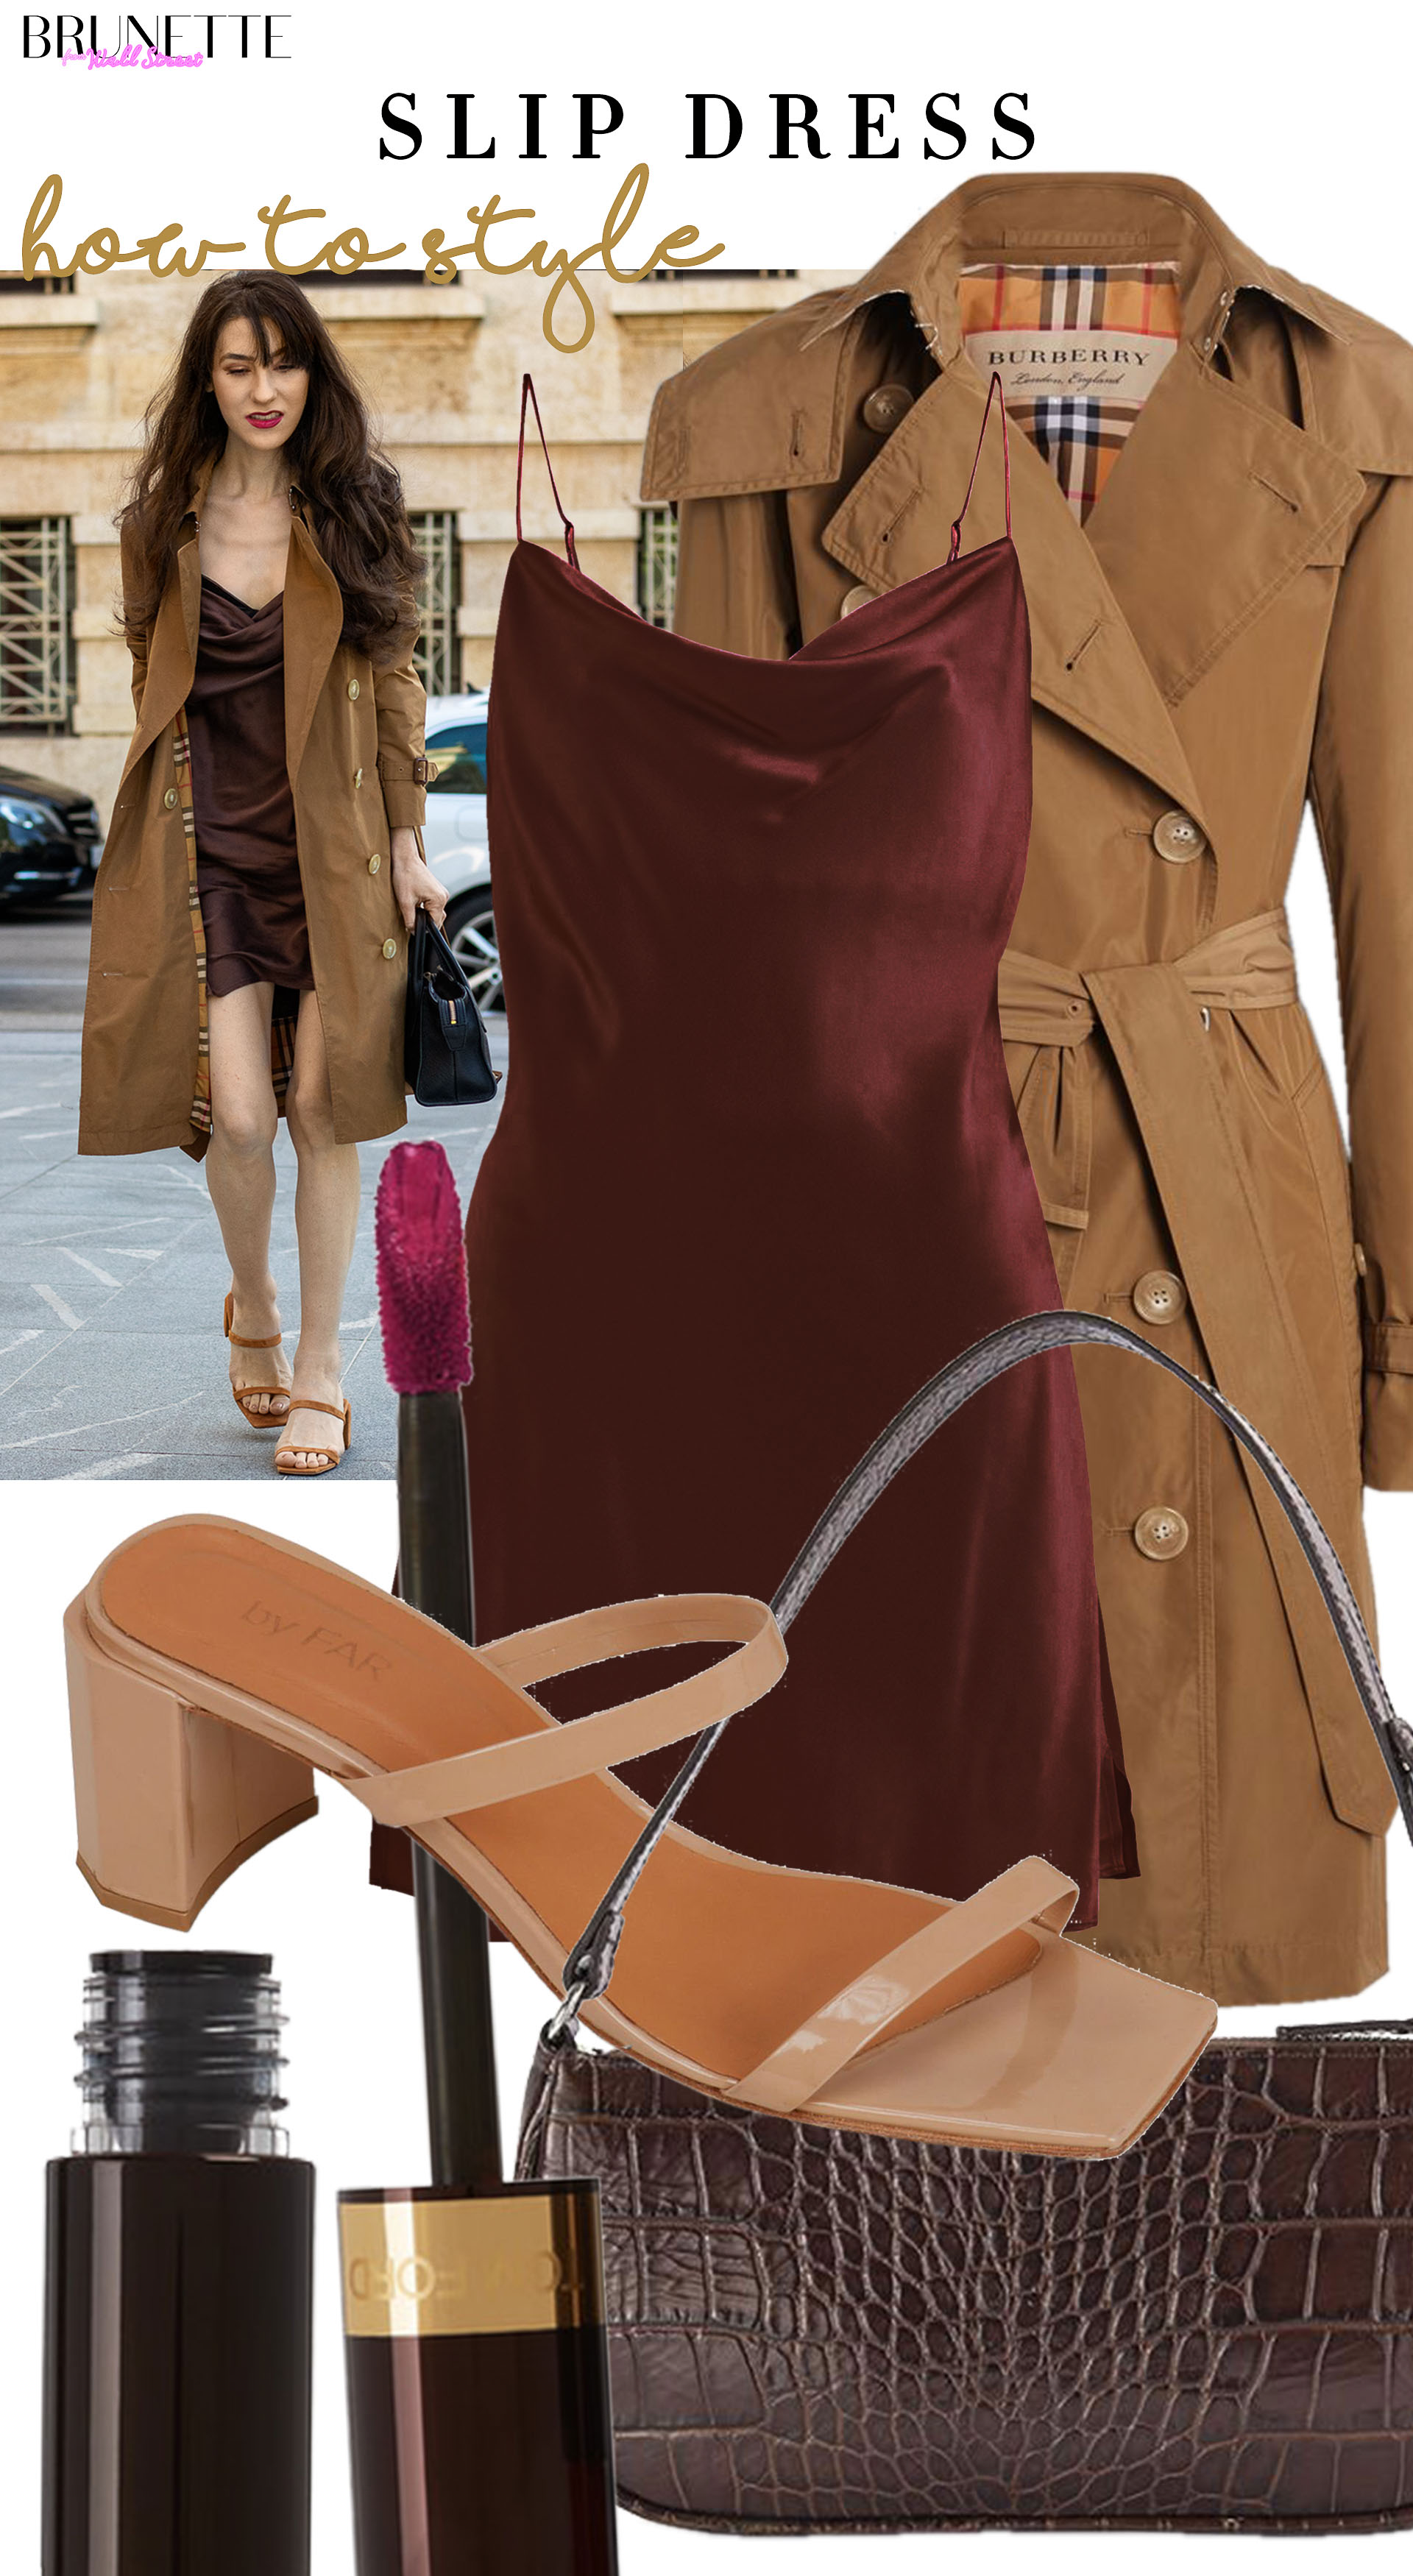 Brunette from Wall Street how to style slip dress Burberry trench coat strappy sandals shoulder bag summer to fall